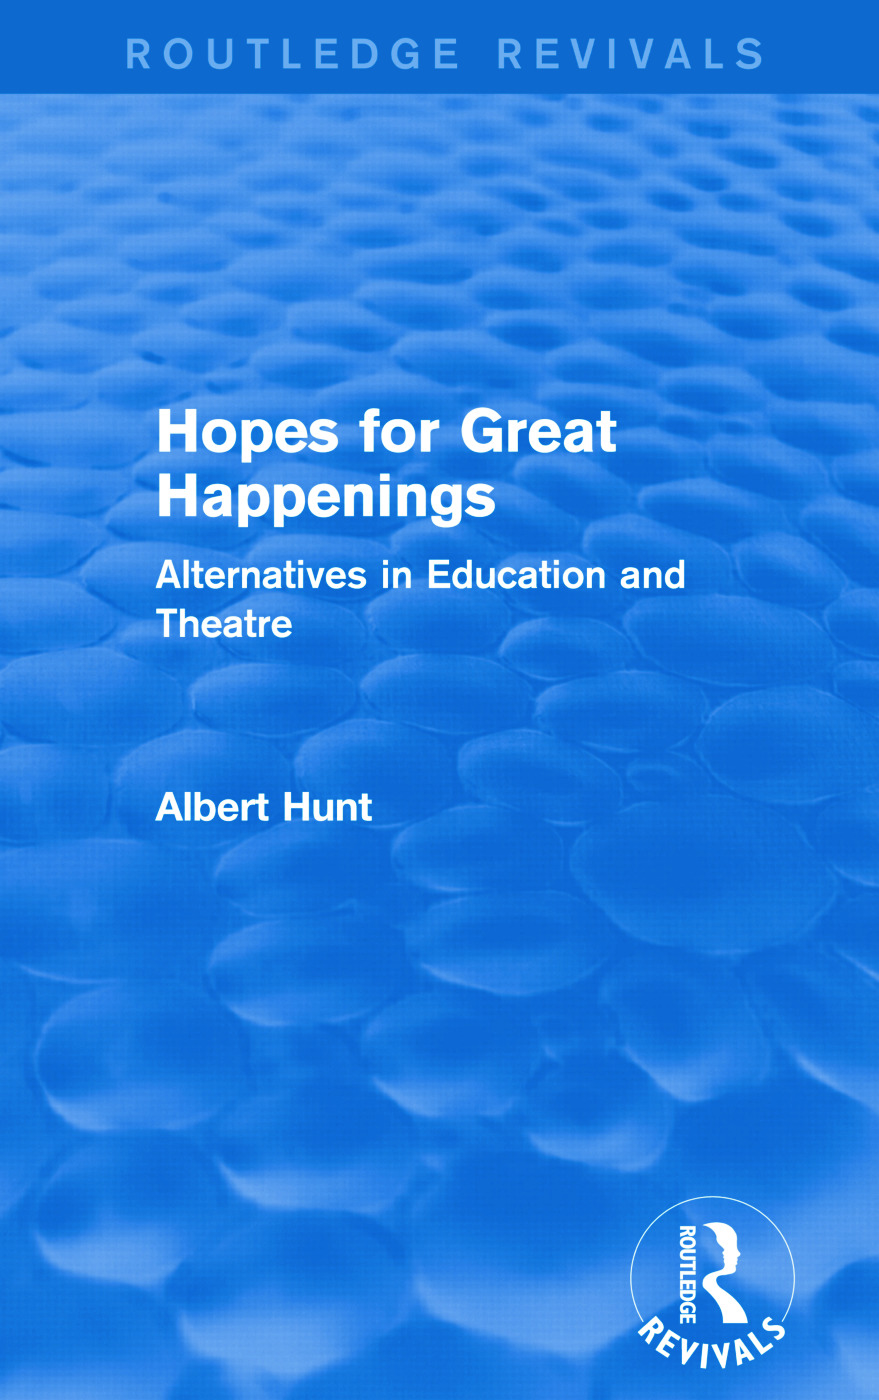 Hopes for Great Happenings (Routledge Revivals): Alternatives in Education and Theatre book cover